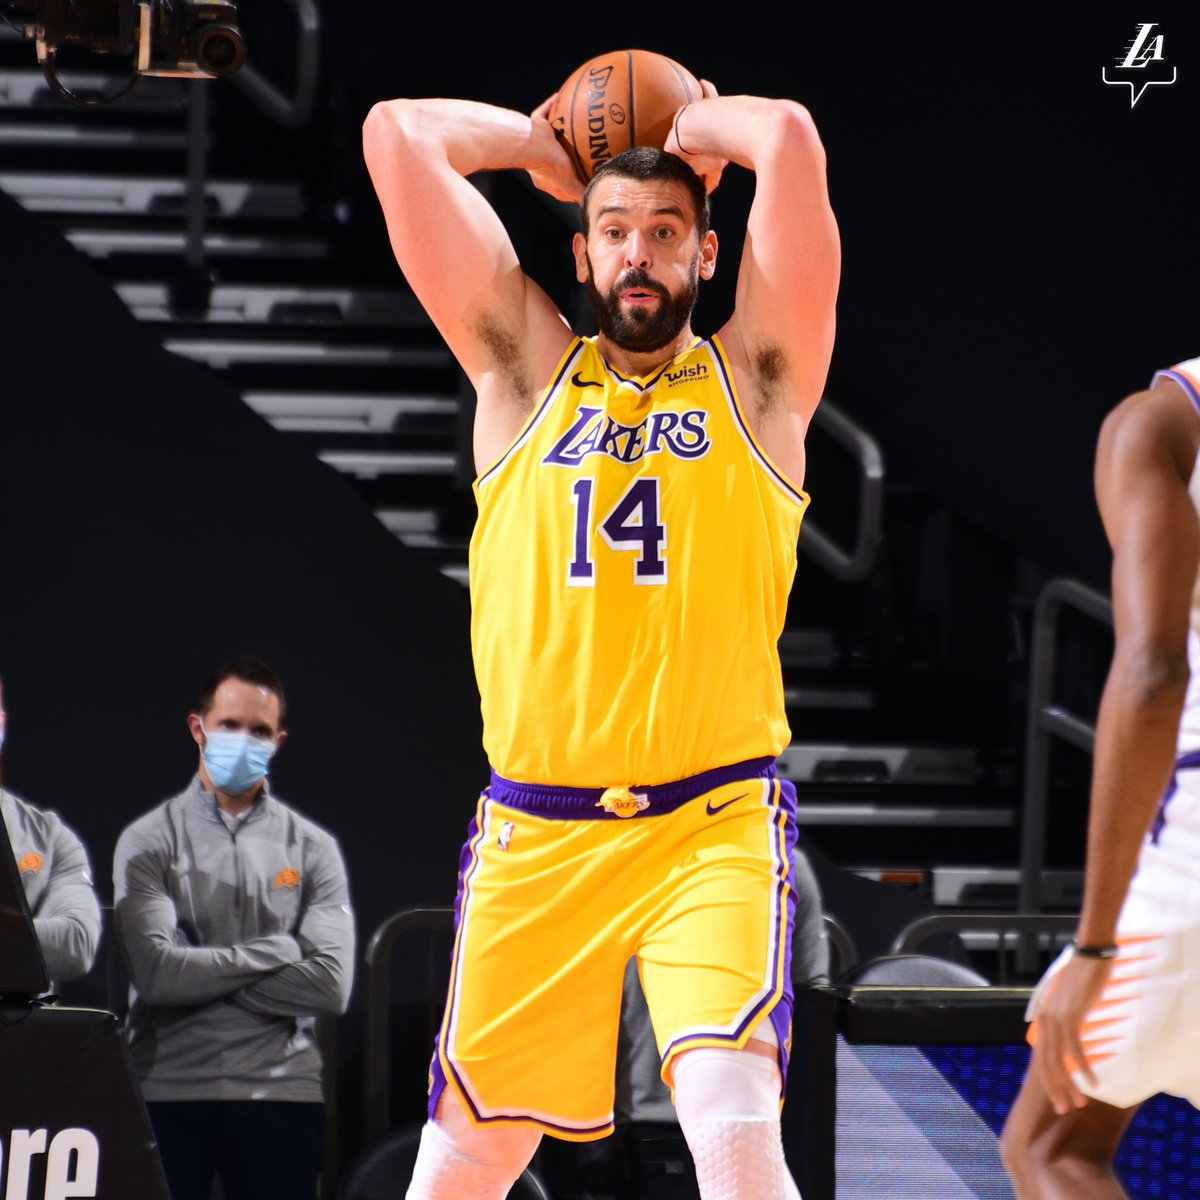 RT @Ballislife: Marc Gasol already has a passing mixtape with the @Lakers!  https://t.co/10nJzzBy0o